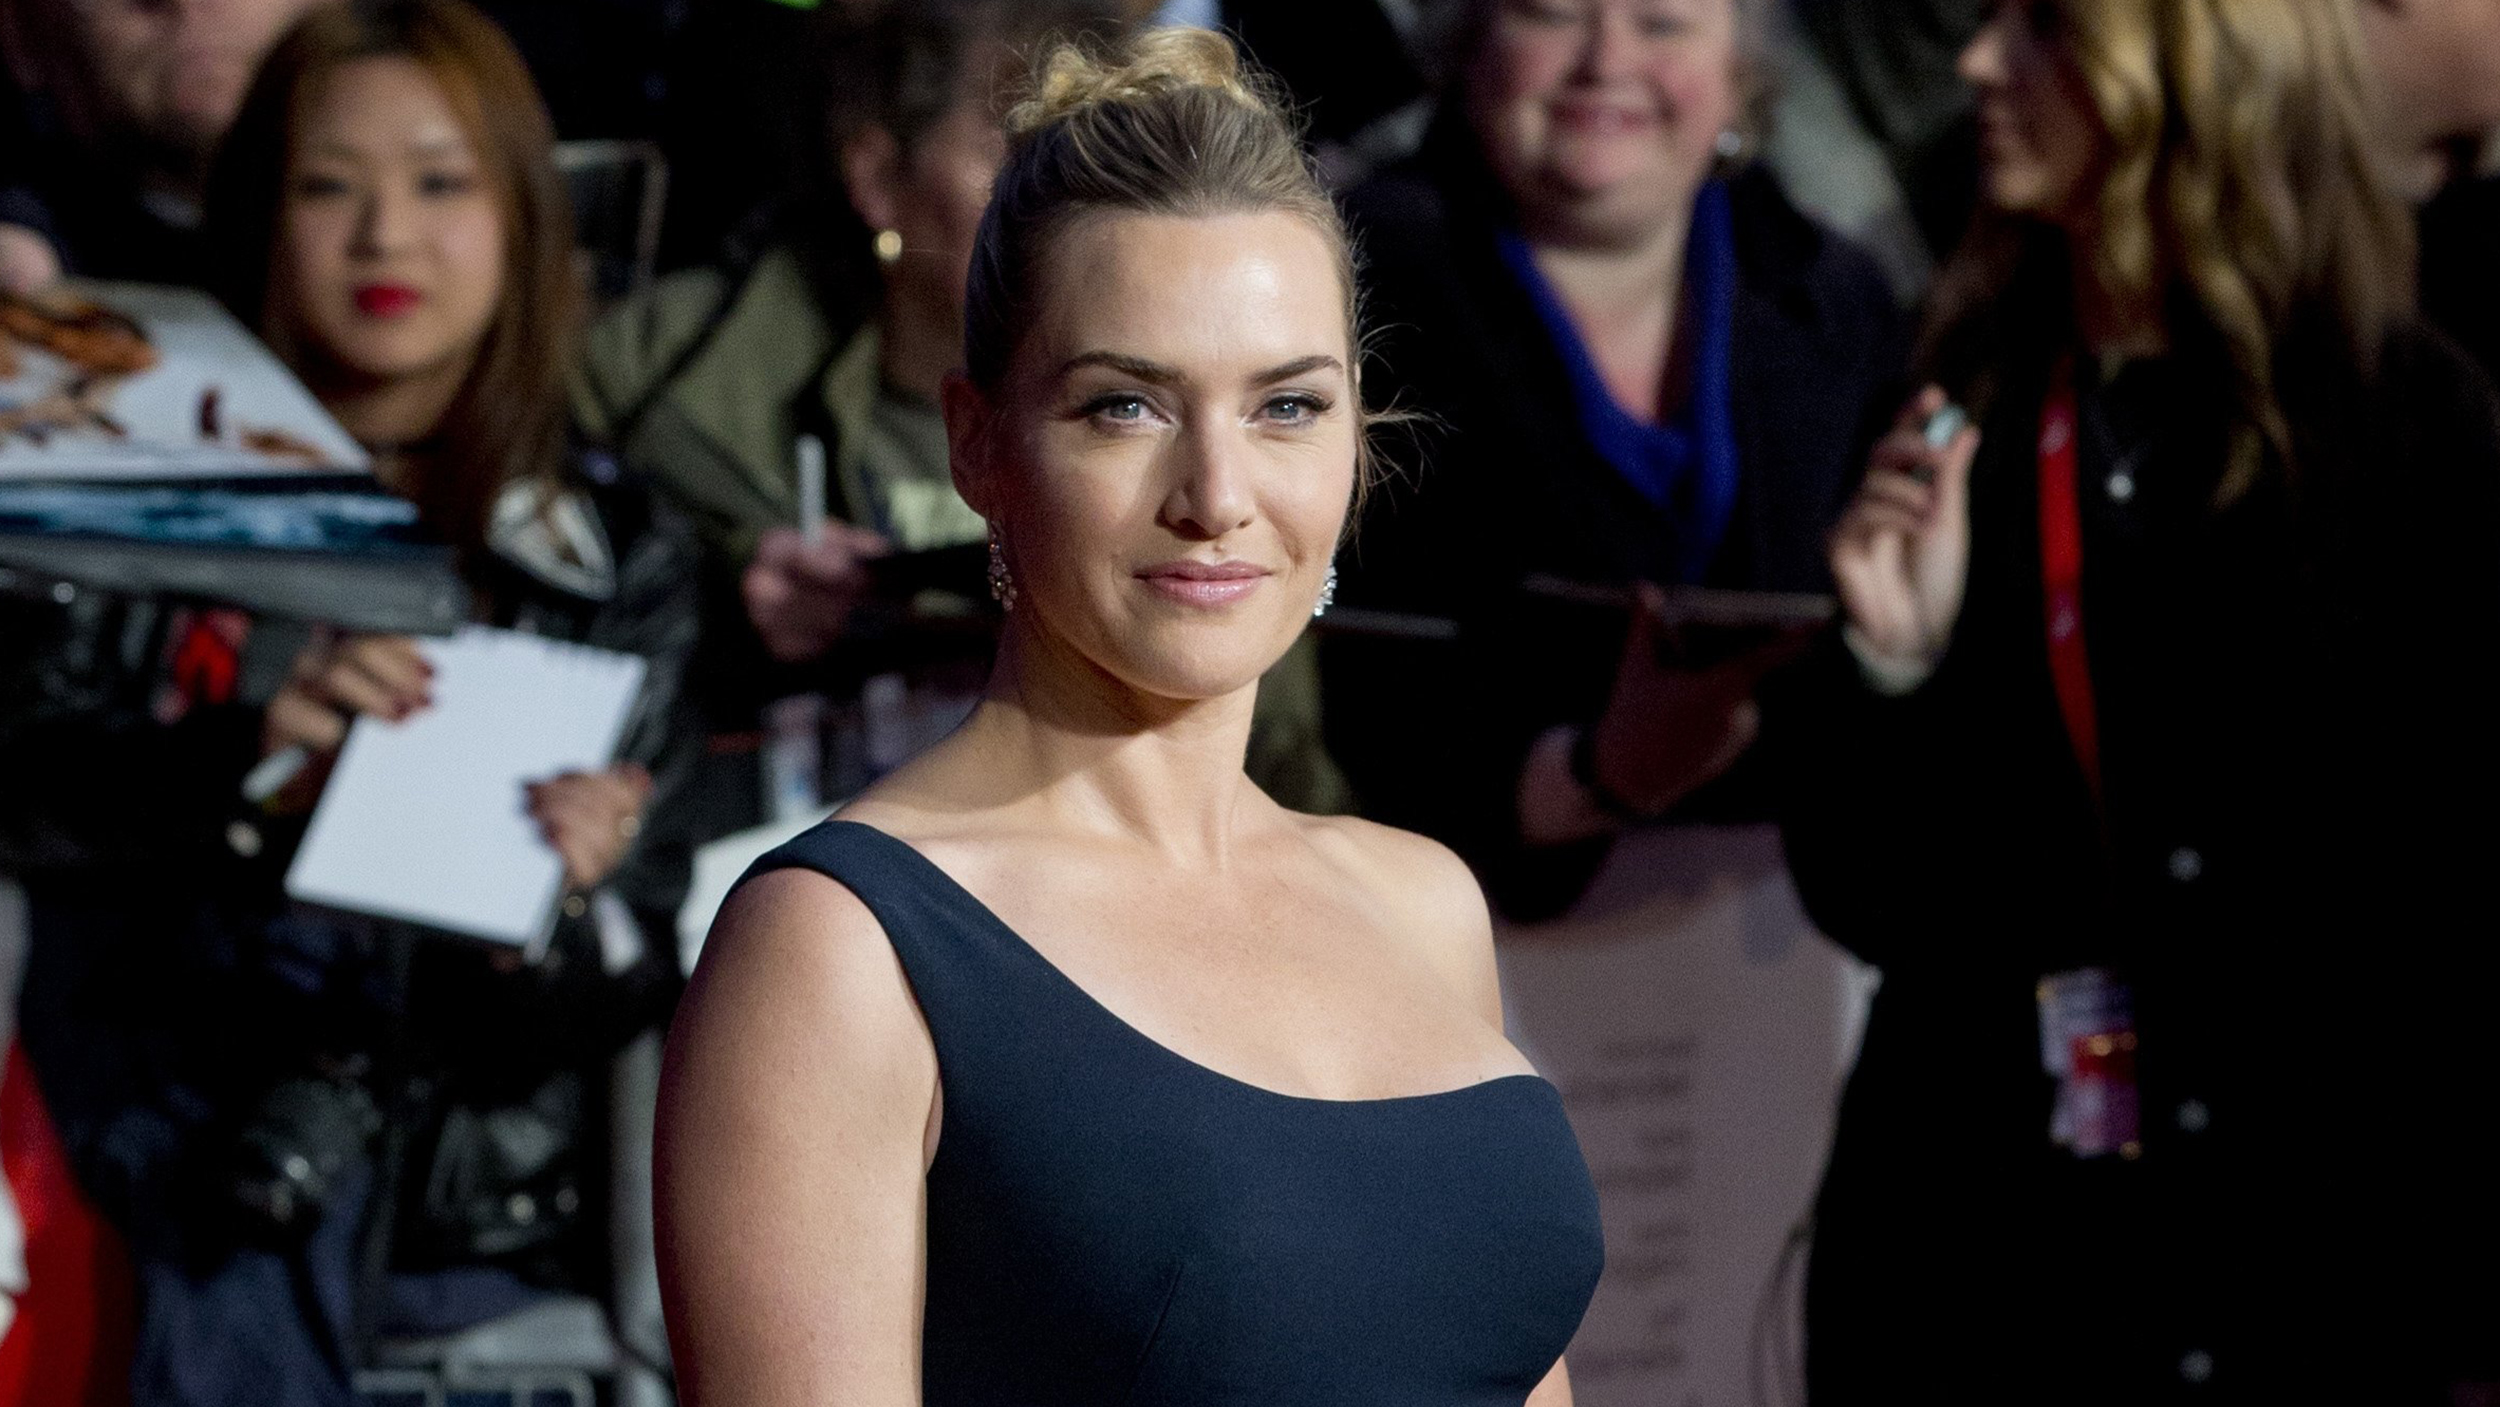 Kate Winslet Bans Kids From Social Media Says It Impacts Self Esteem